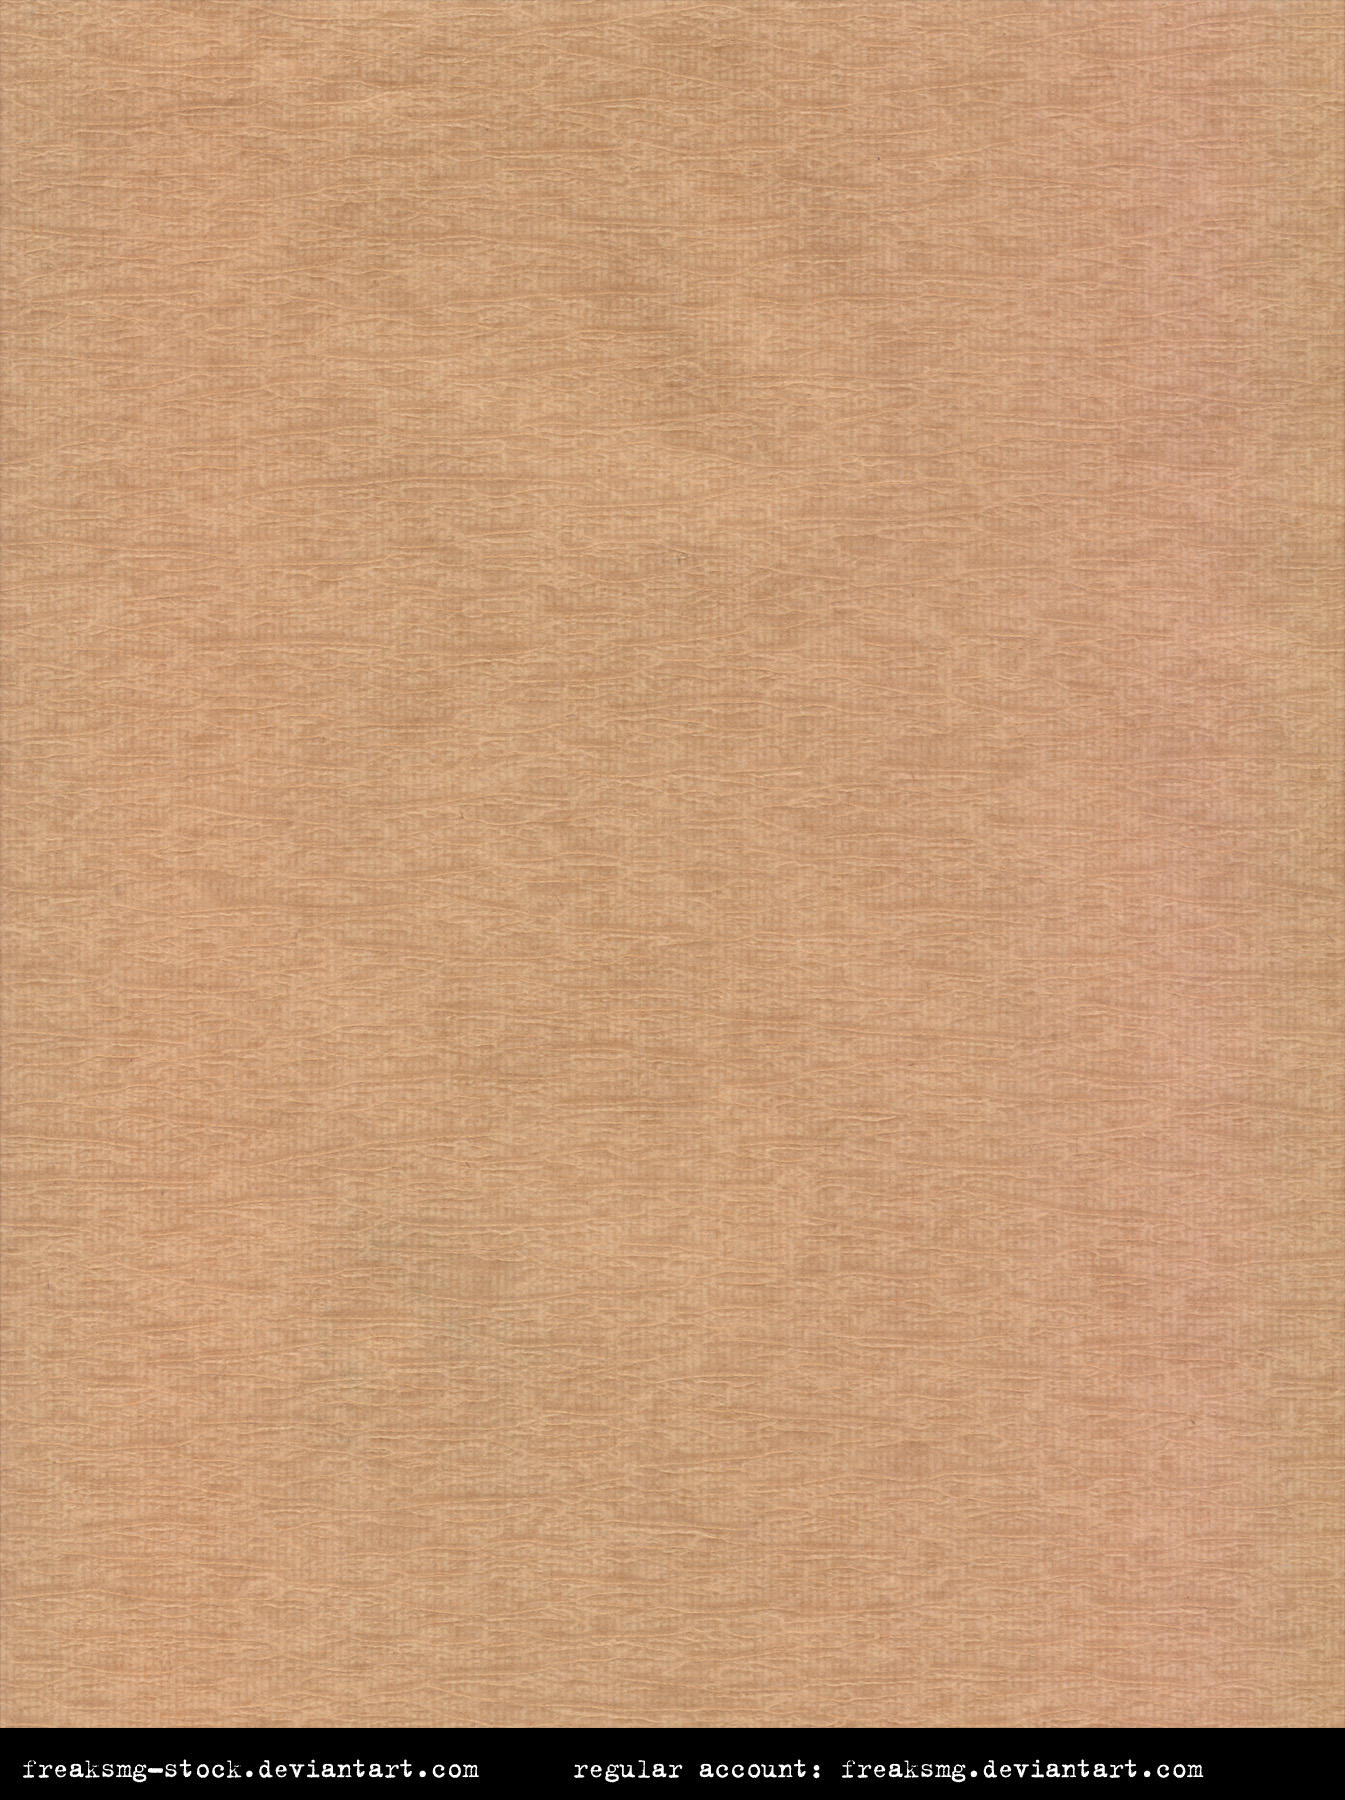 linen paper stock Premium paper is sometimes think minimal card-stock smooth to the touch, this sturdy paper is ideal with a mild linen texture, this paper communicates.